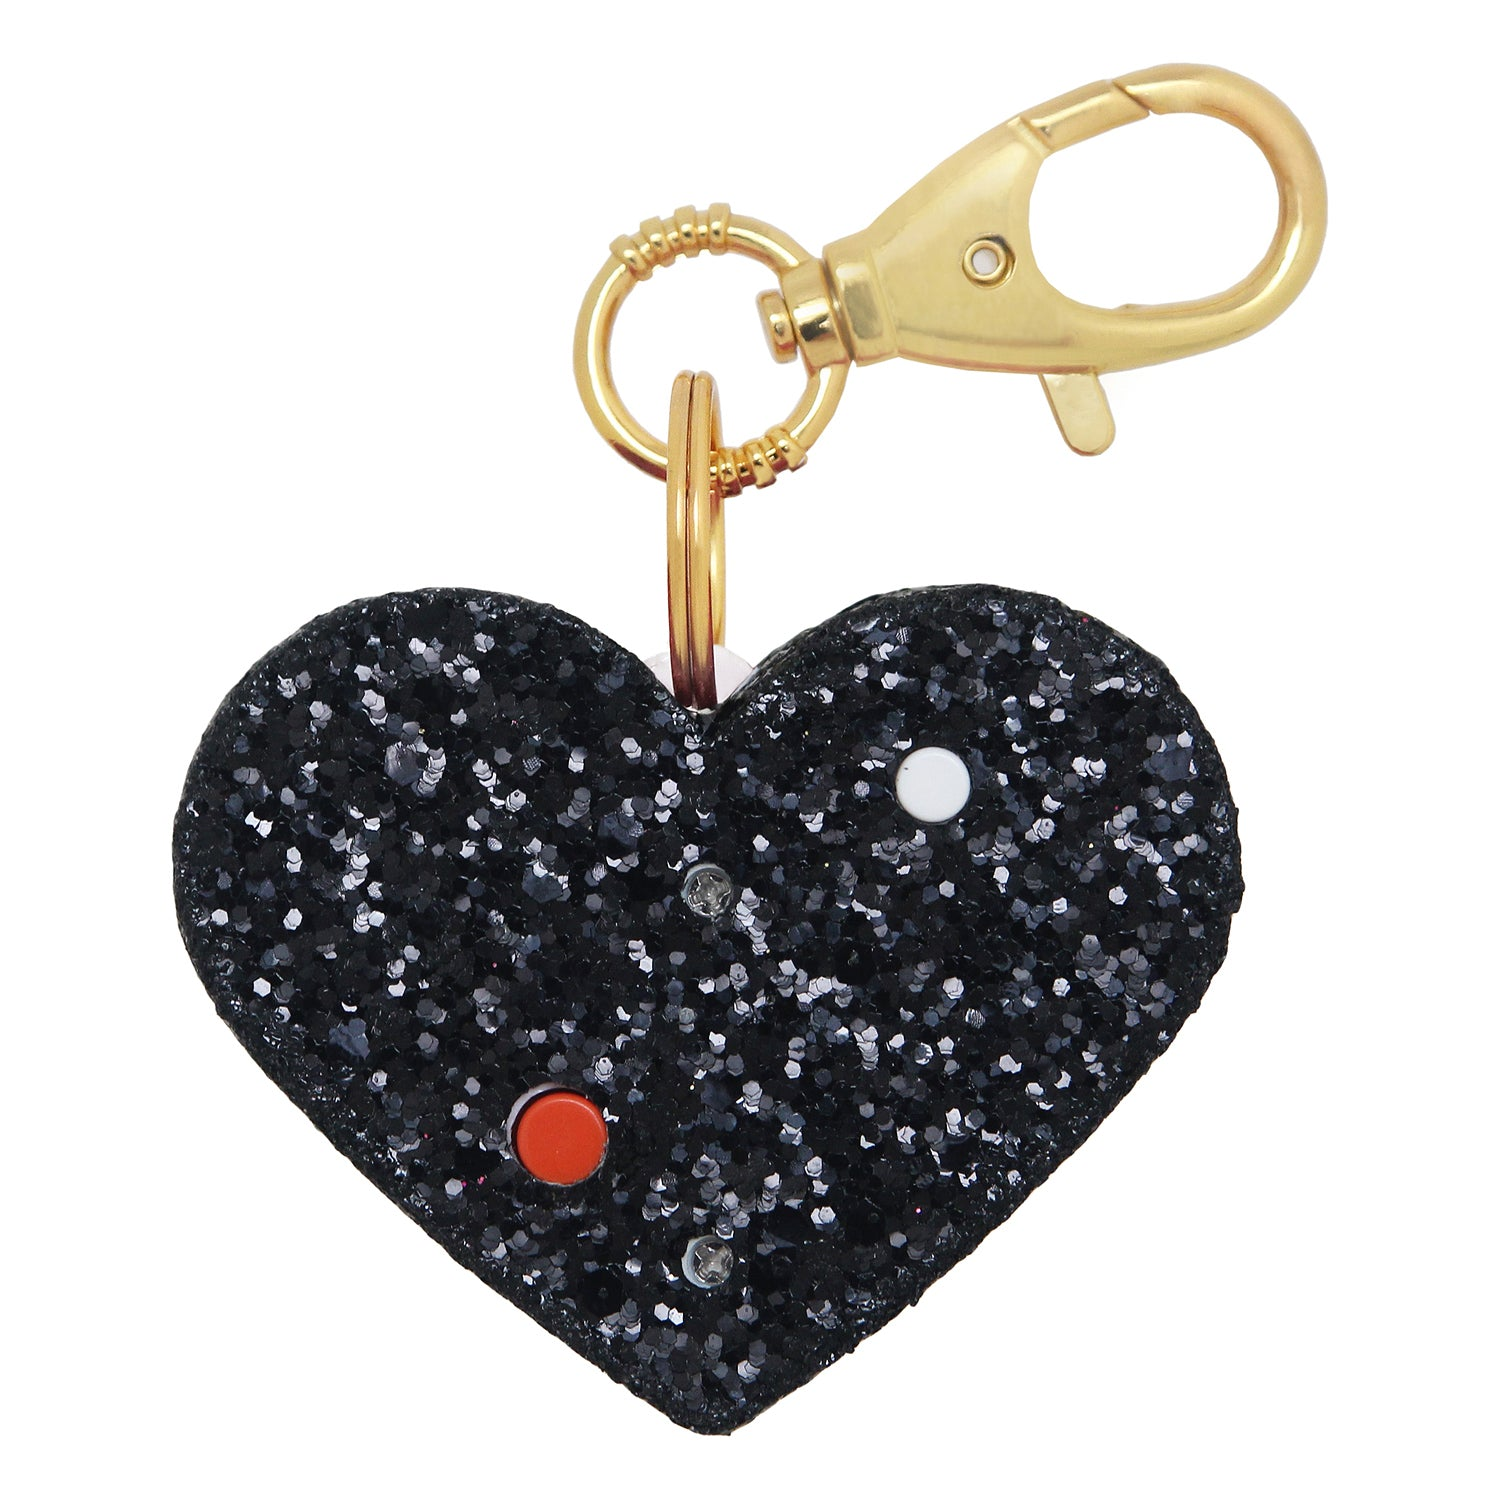 Personal Security Alarm - Glitter Heart (Black BACK)